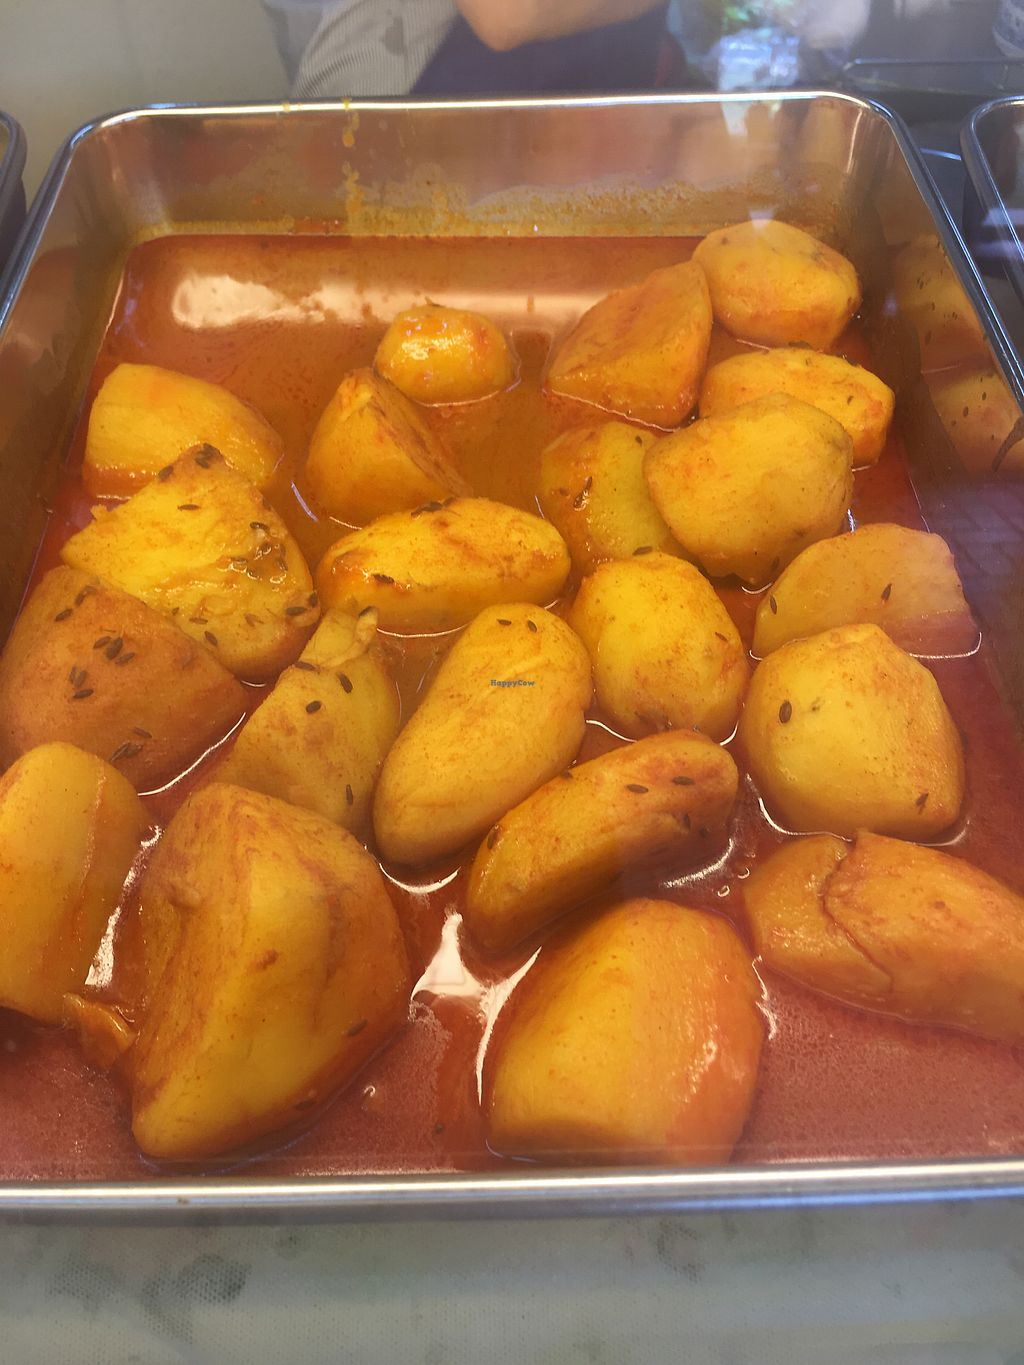 """Photo of CLOSED: Eastern Pure Vegetarian Food  by <a href=""""/members/profile/BernardKoh"""">BernardKoh</a> <br/>Curry Potatoes <br/> February 21, 2018  - <a href='/contact/abuse/image/98465/361948'>Report</a>"""